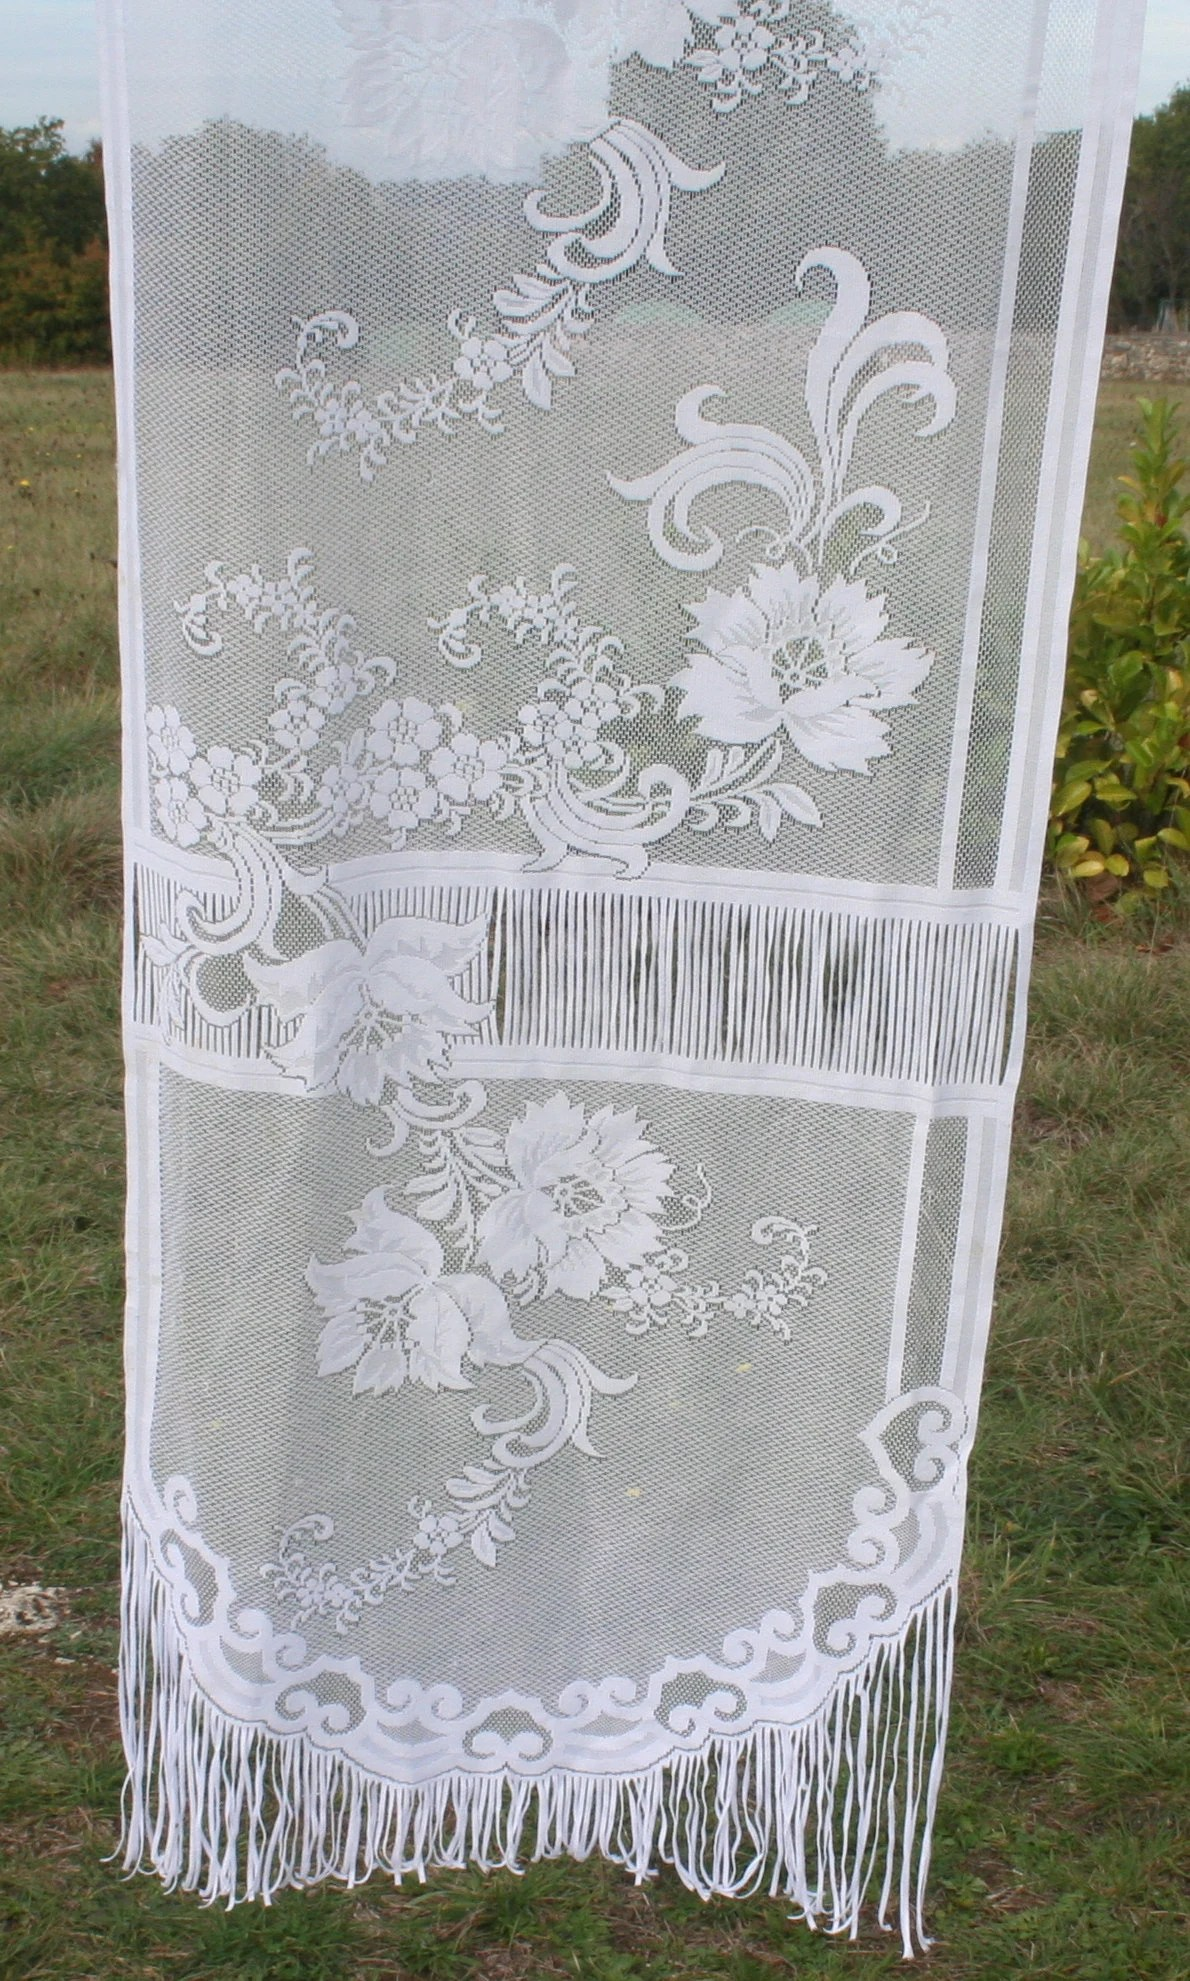 French Lace Curtains French Lace Curtain White Long Curtains Floral Garden Vintage Sheer Bohemian Shabby Chic